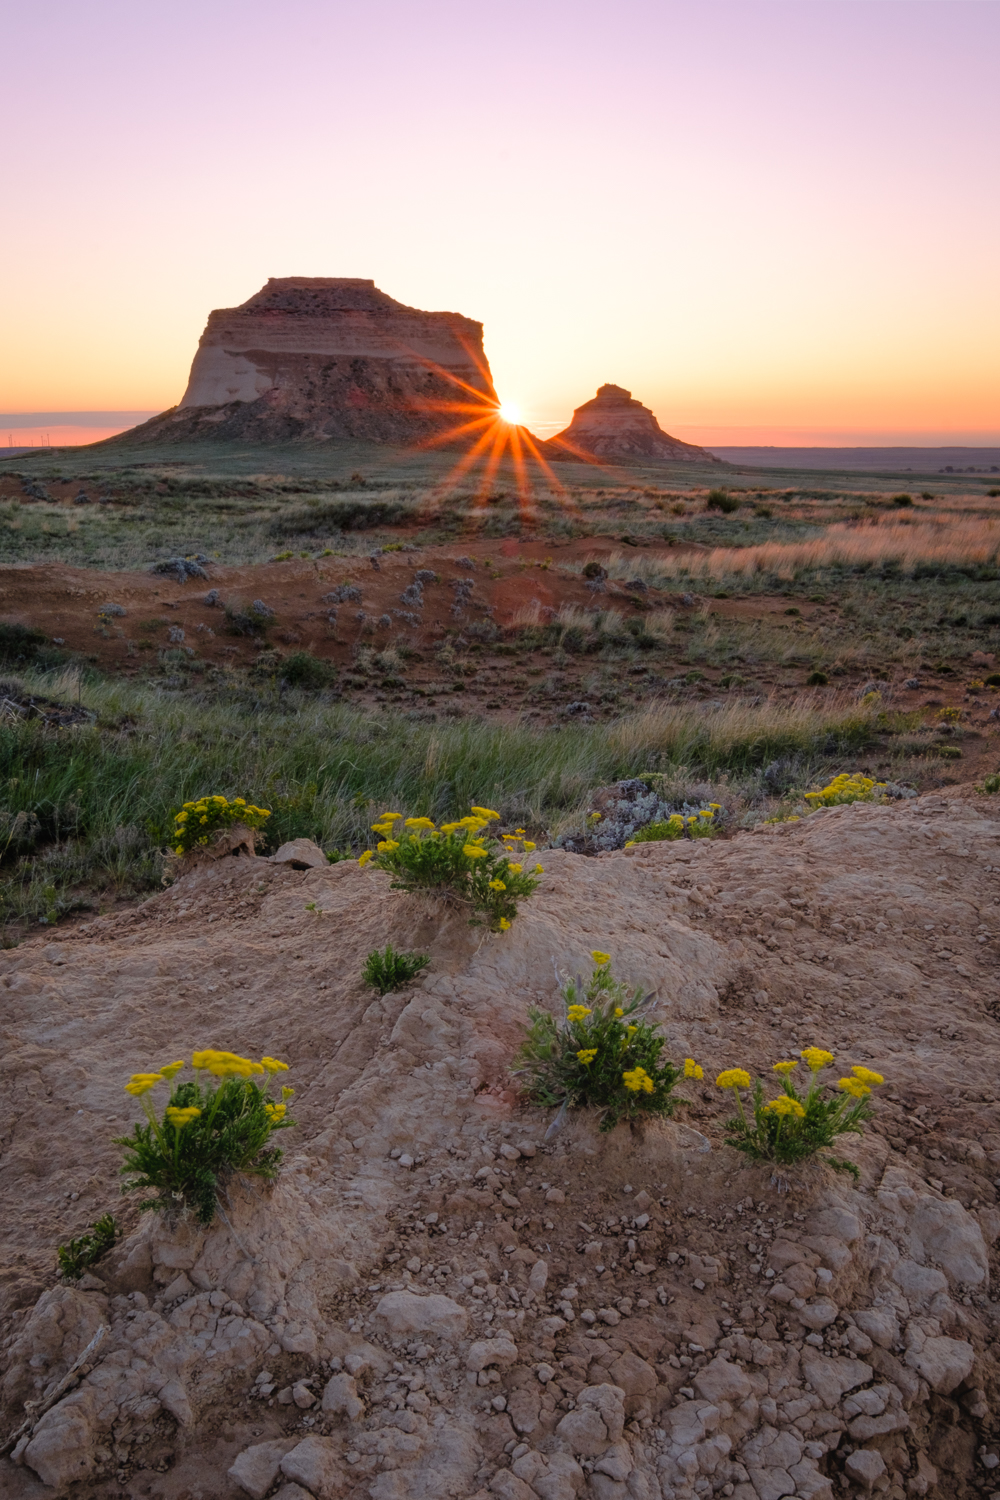 Sunrise at Pawnee Buttes, in Pawnee National Grassland, CO